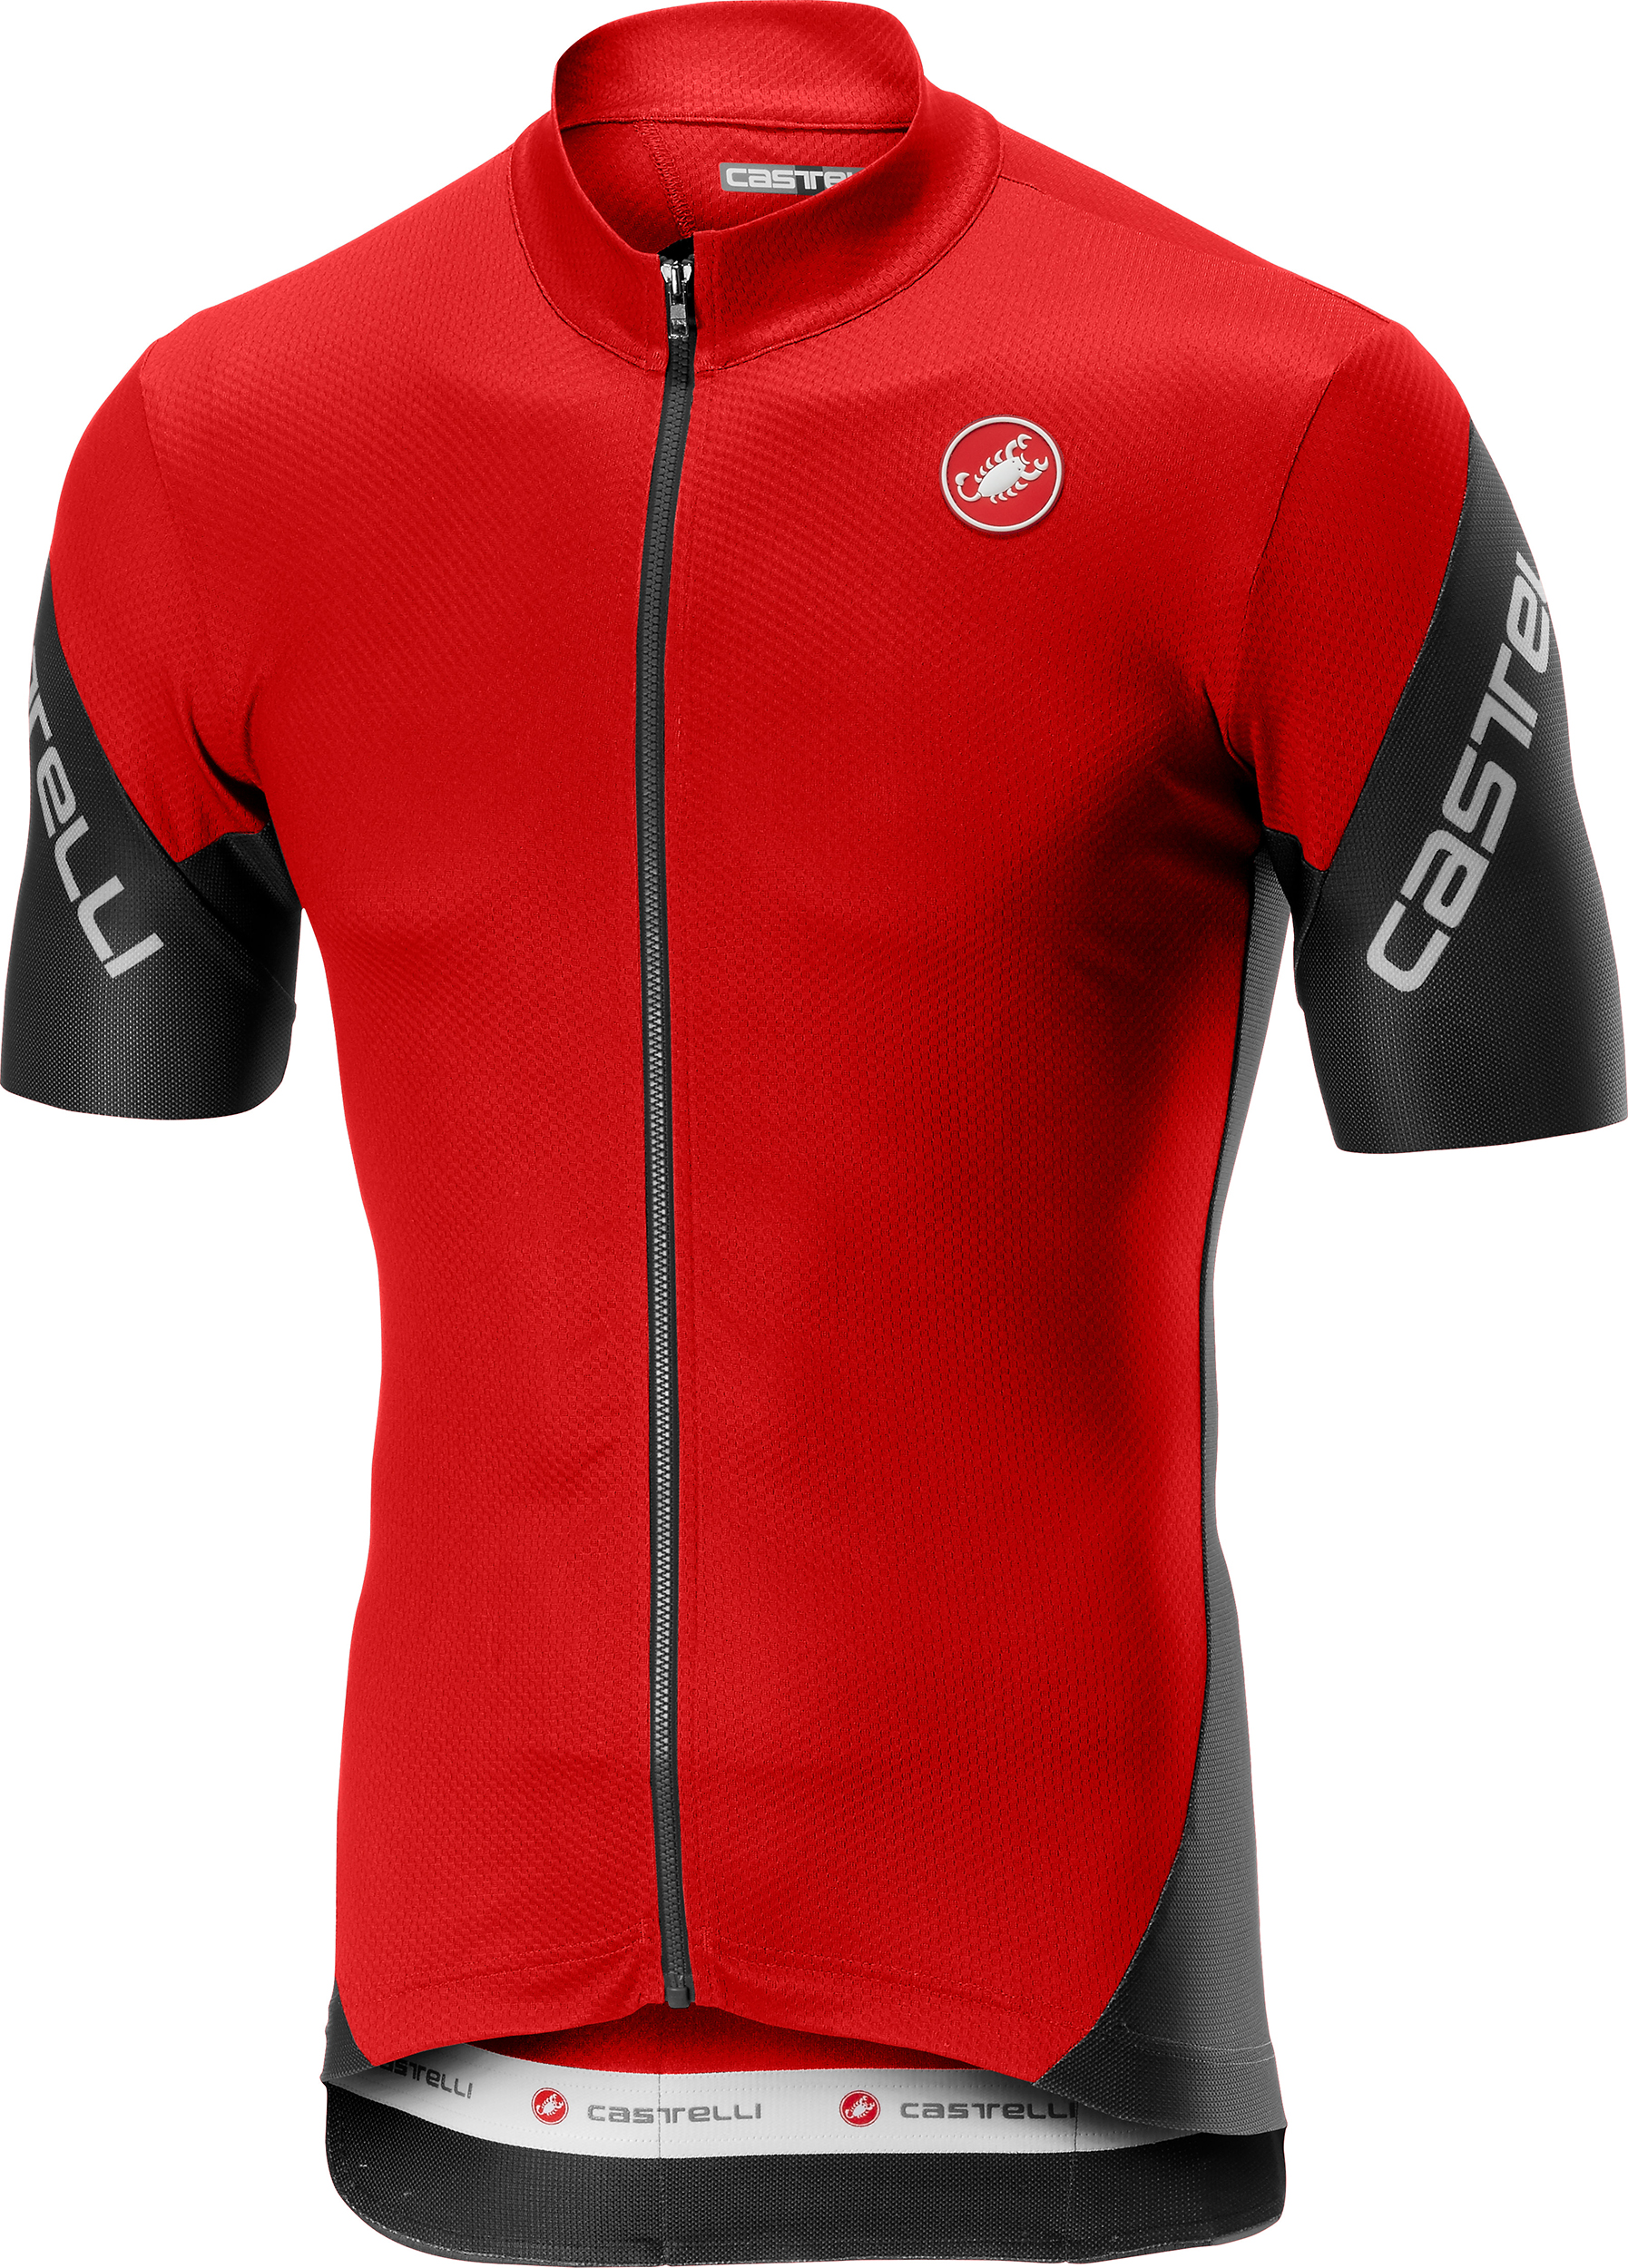 cdf7a4a77 Cycling jerseys and shirts